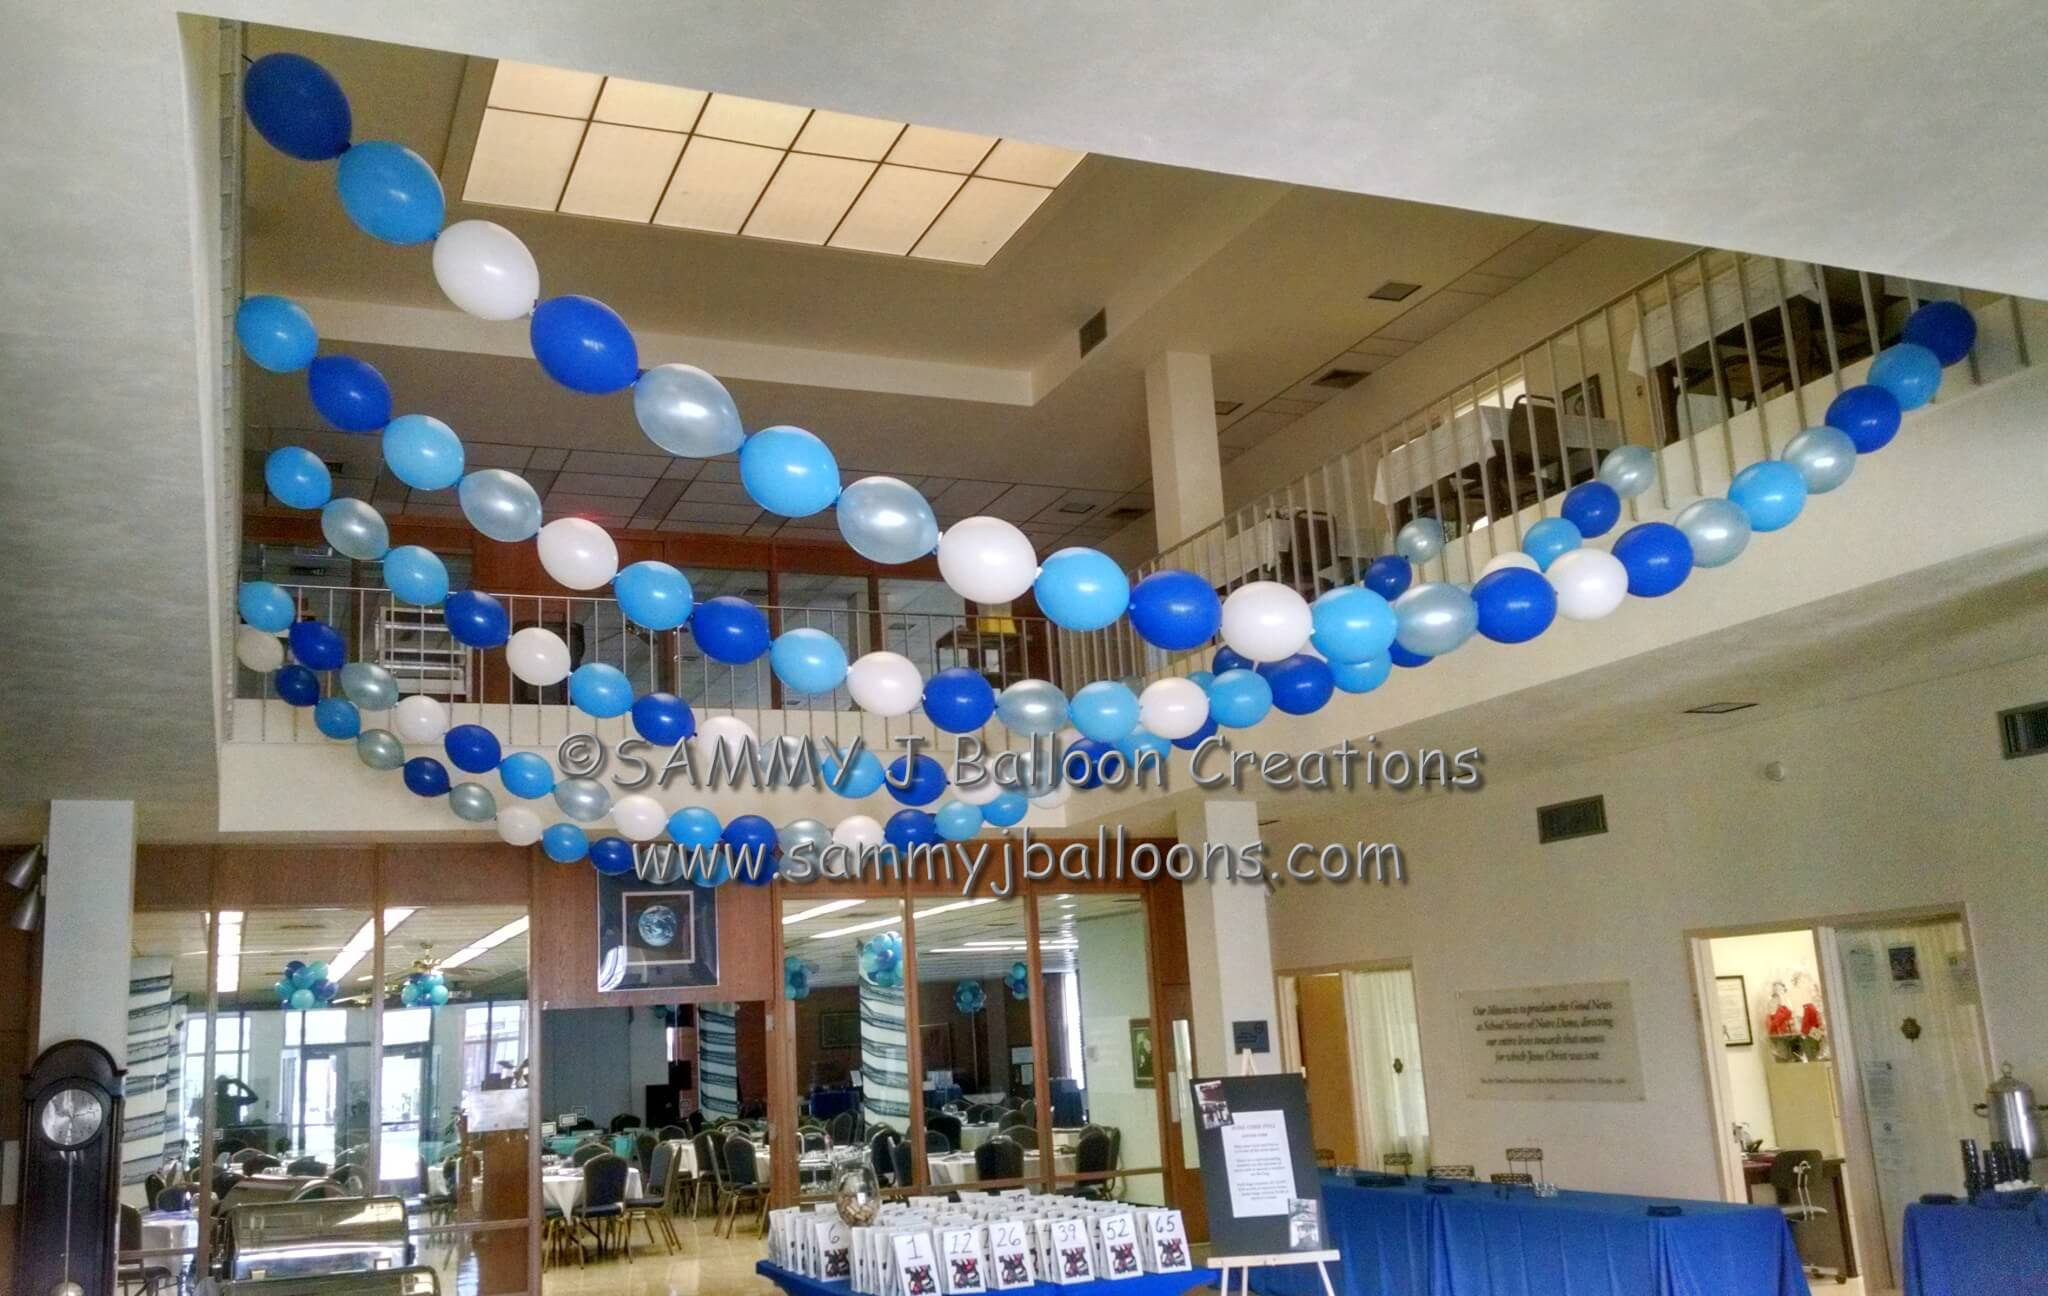 SAMMY J Balloon Creations st louis balloons link o loon garland